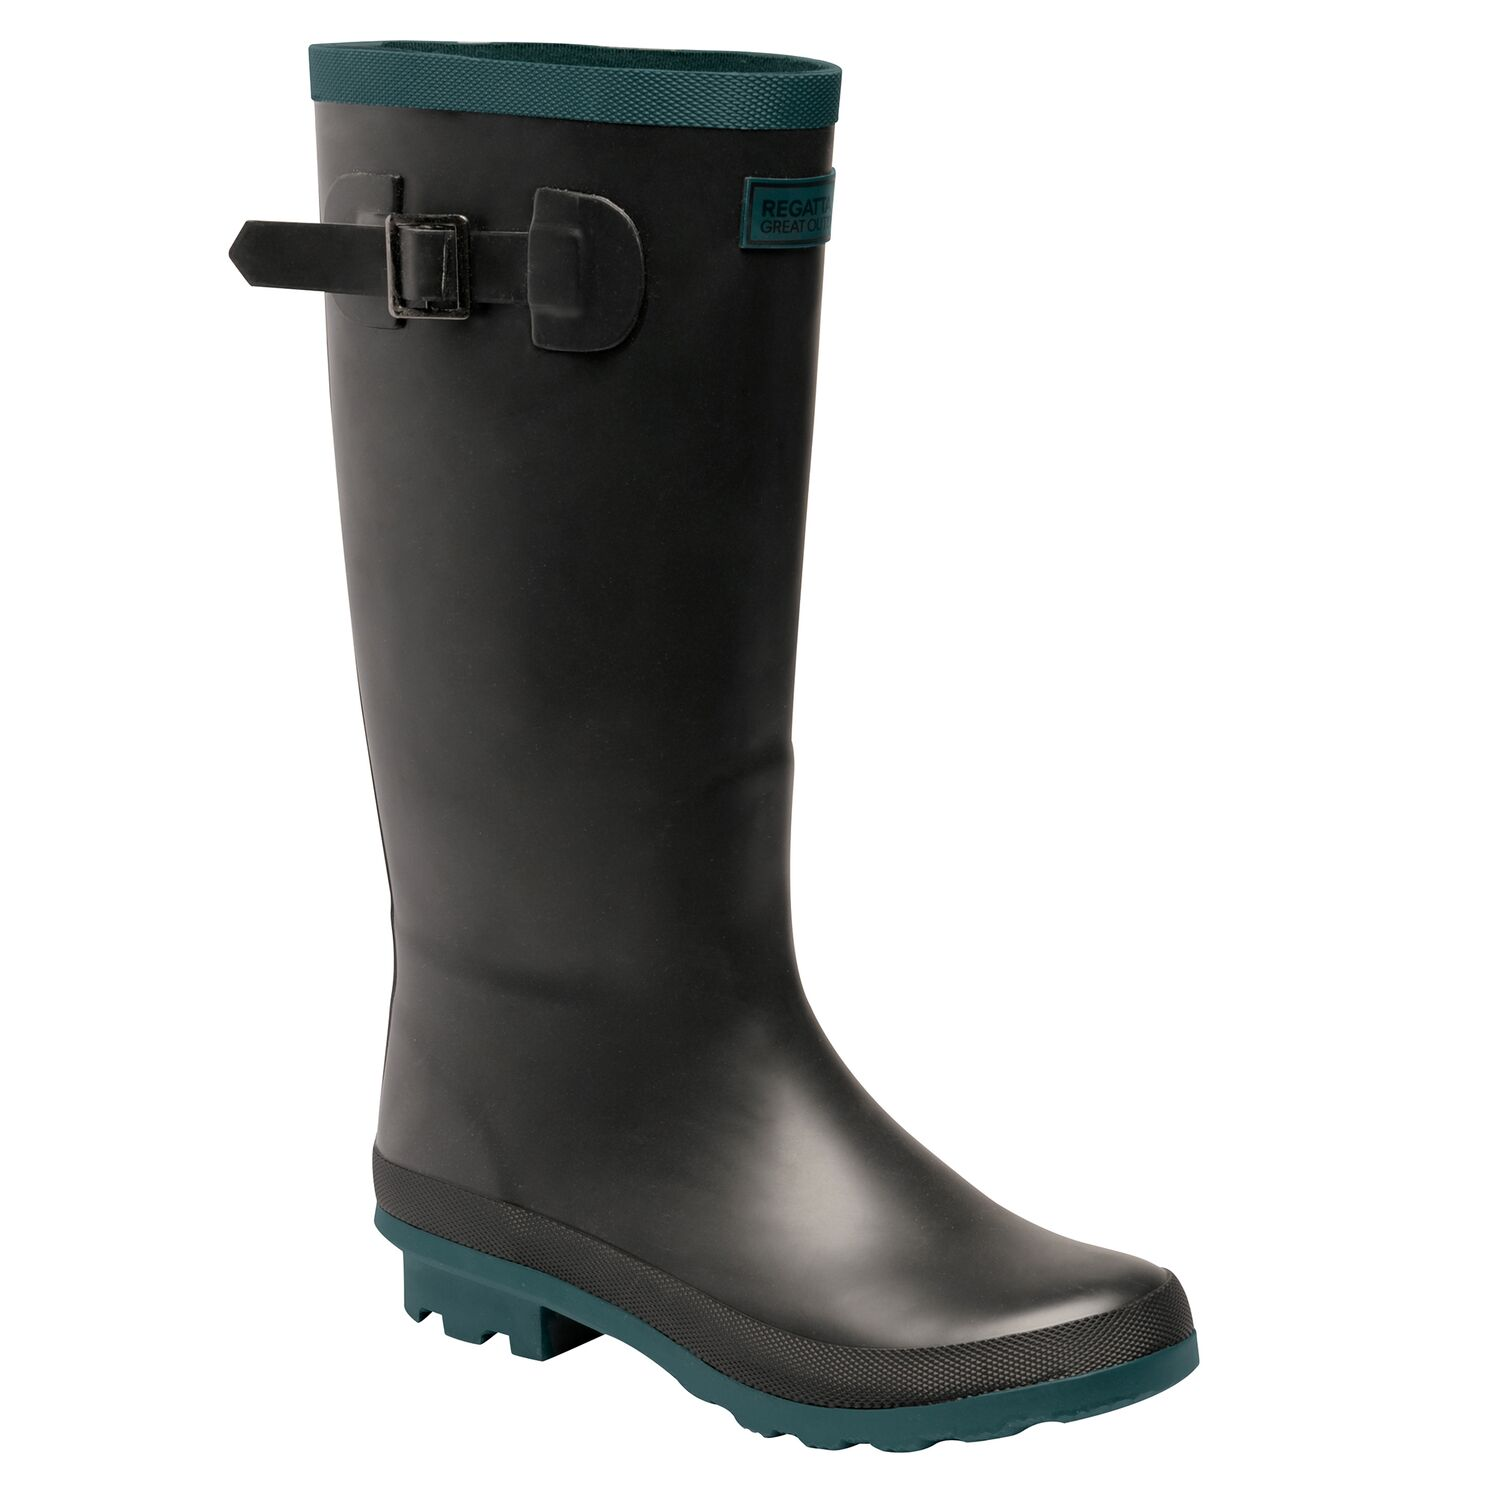 Women's black wellington boot with teal detailing.